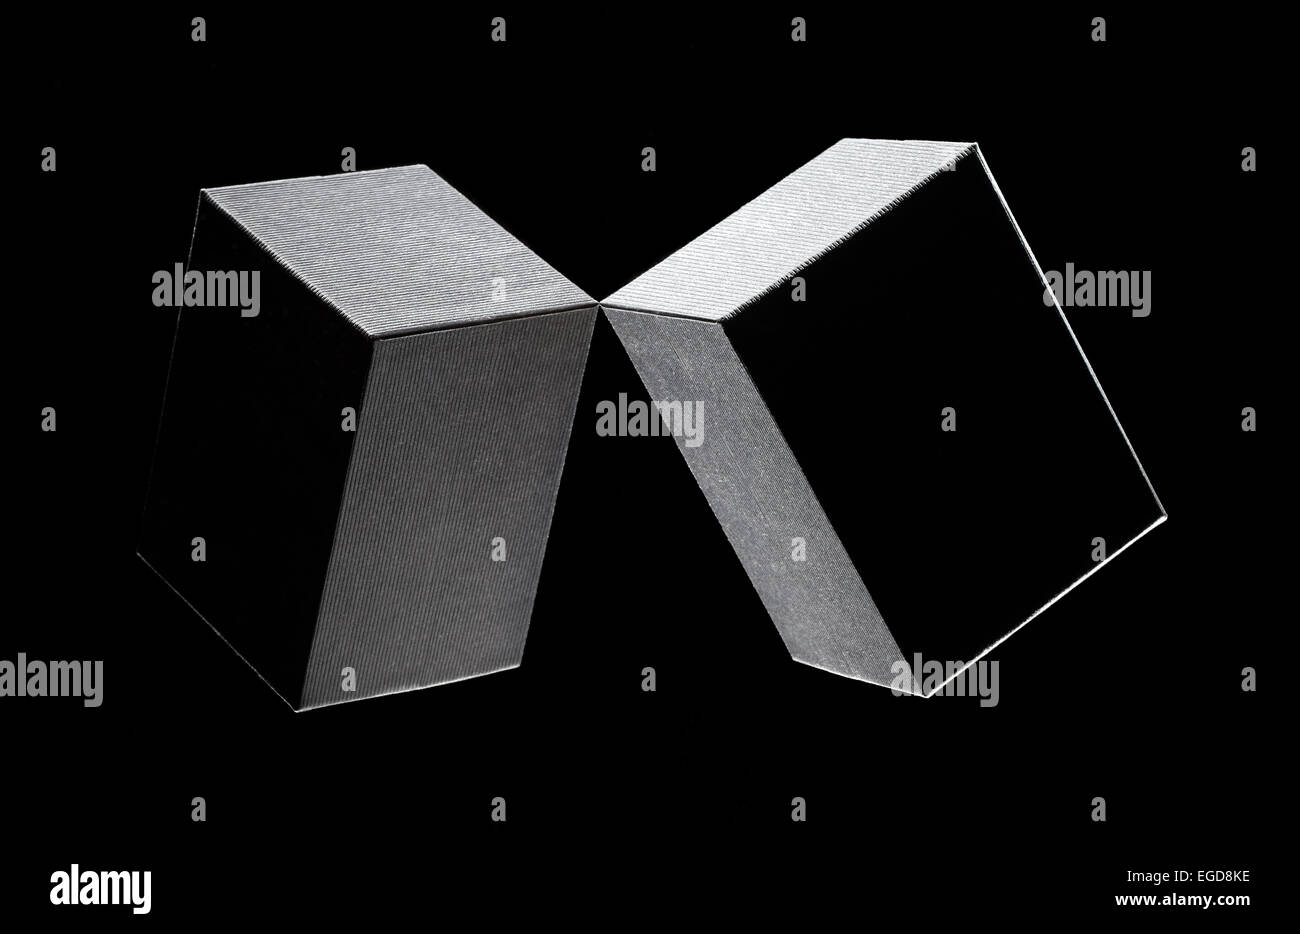 Dark Matter - Visualization - Stock Image